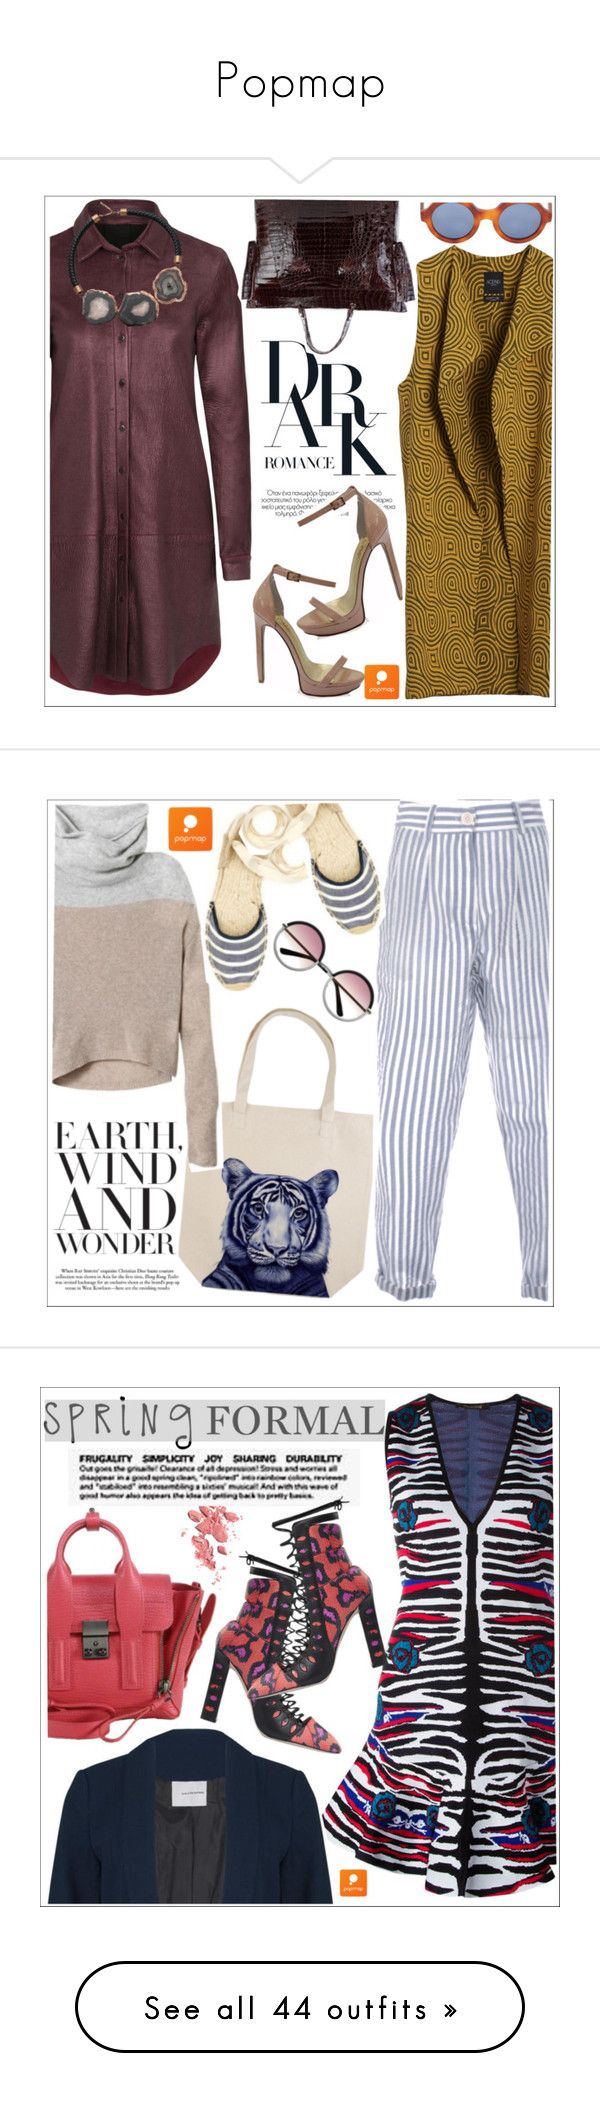 """""""Popmap"""" by teoecar ❤ liked on Polyvore featuring Merci Me London, Saturnino, Augusta, Soludos, Chanel, daria, Sandy Liang, Le Specs, Cape Robbin and Barbara Bui"""